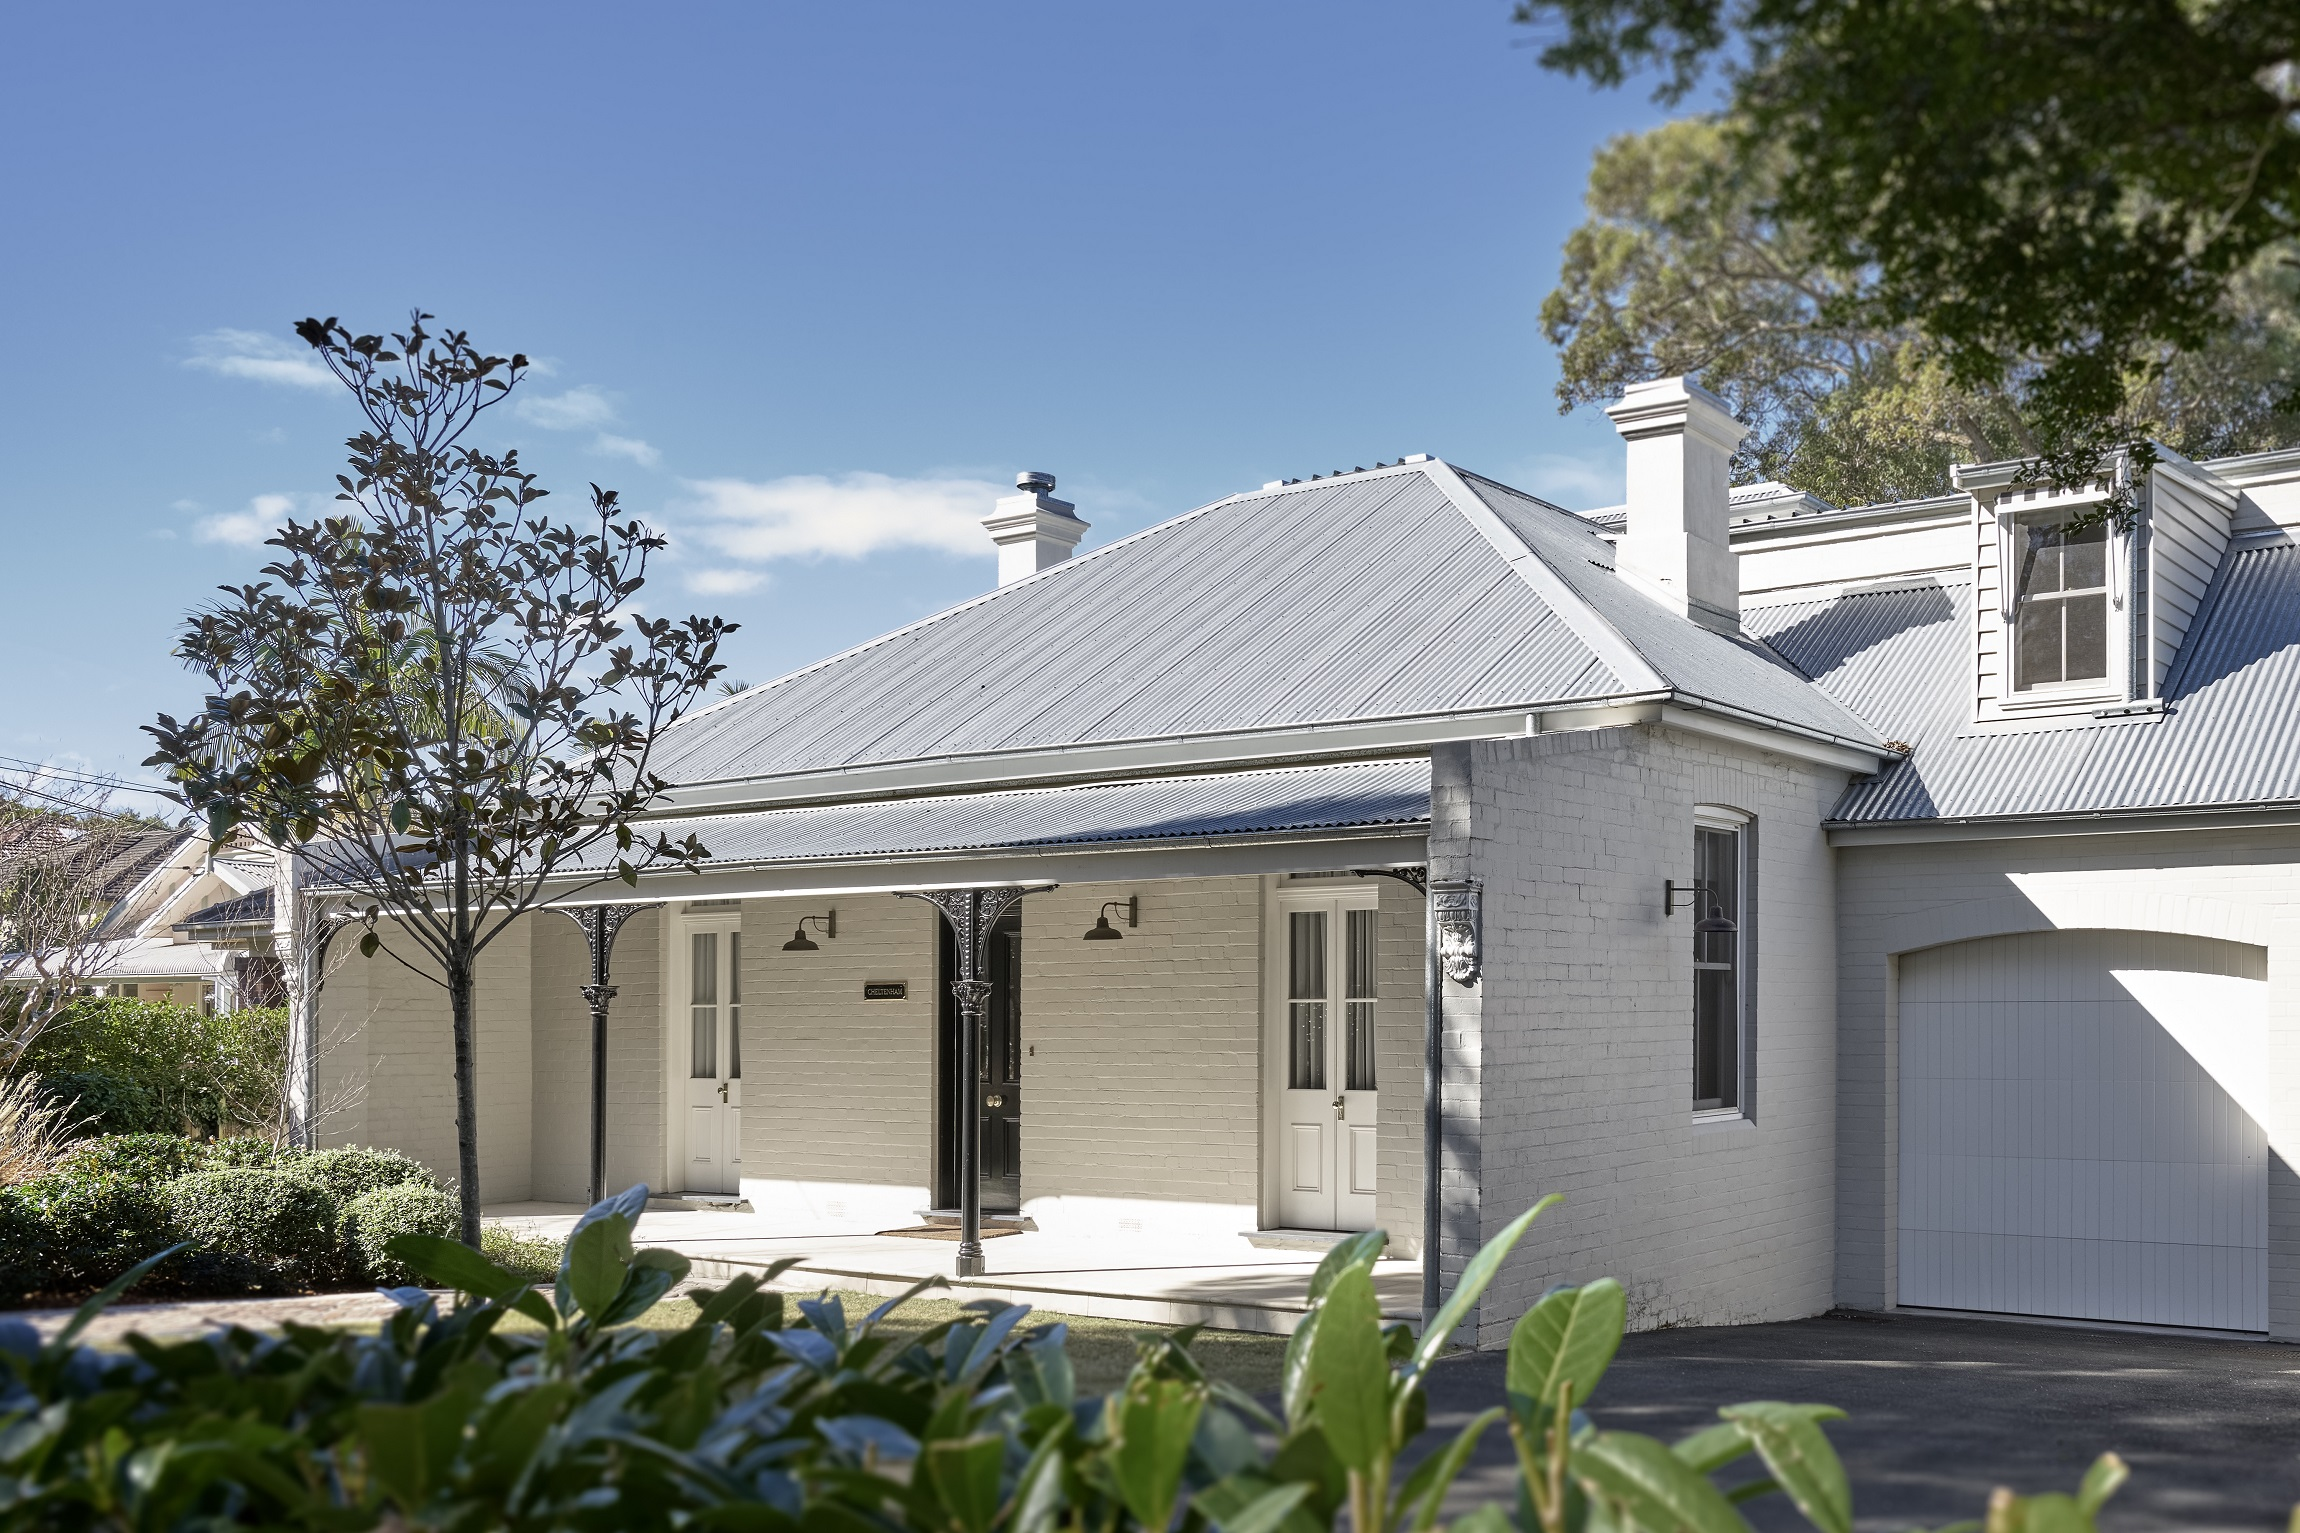 100-Year-Old-Heritage-Home-Restoration-Facade-Michael-Bell-Architects-Sydney